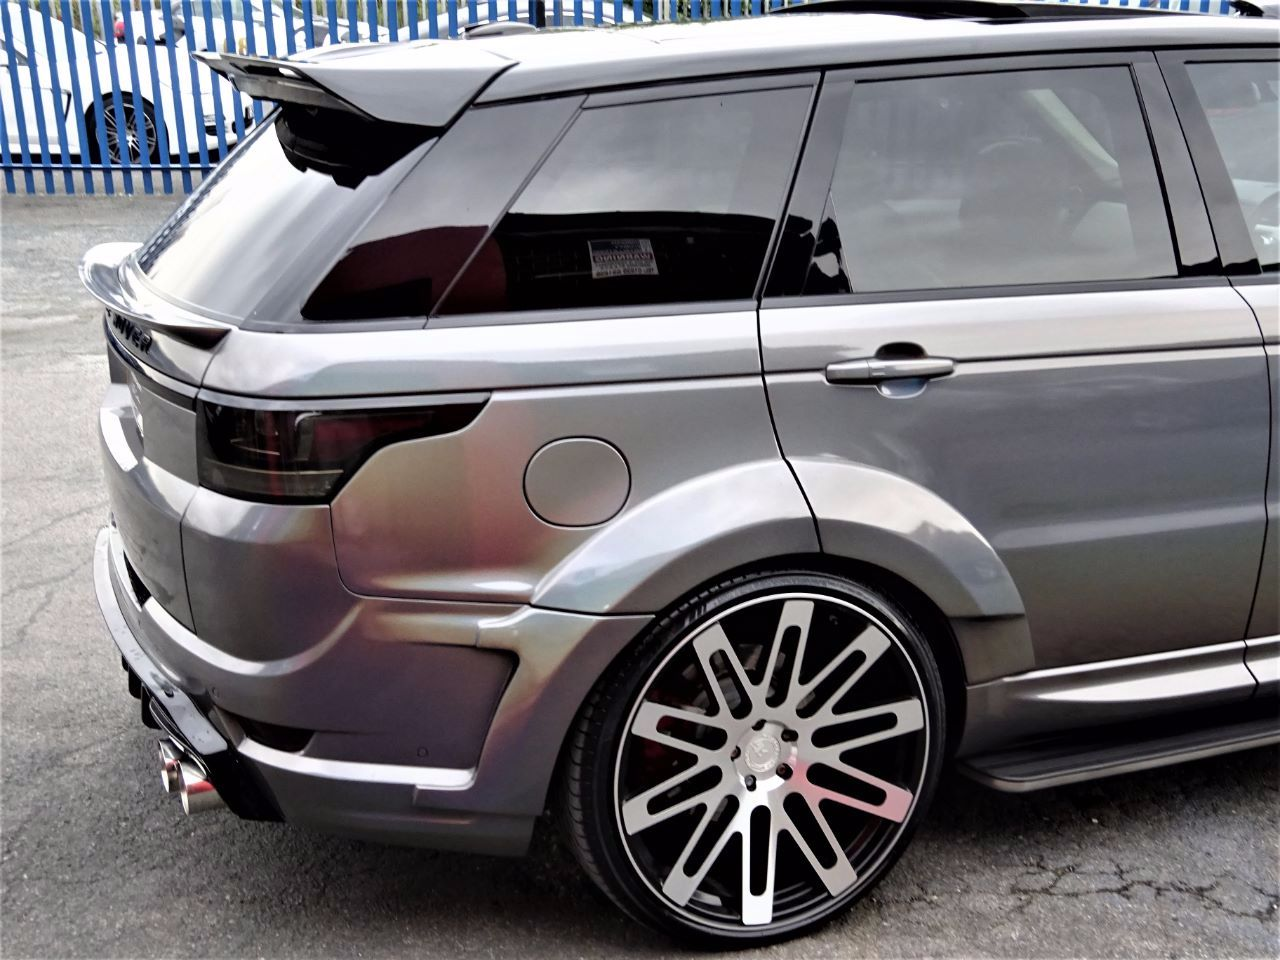 Used Land Rover Range Rover Sport RROVERSPORT ABIOG DYN V8 VZR 600 WIDE ARCH WITH EVERY EXTRA BESPOKE EDITION for sale in Bradford, West Yorkshire ...